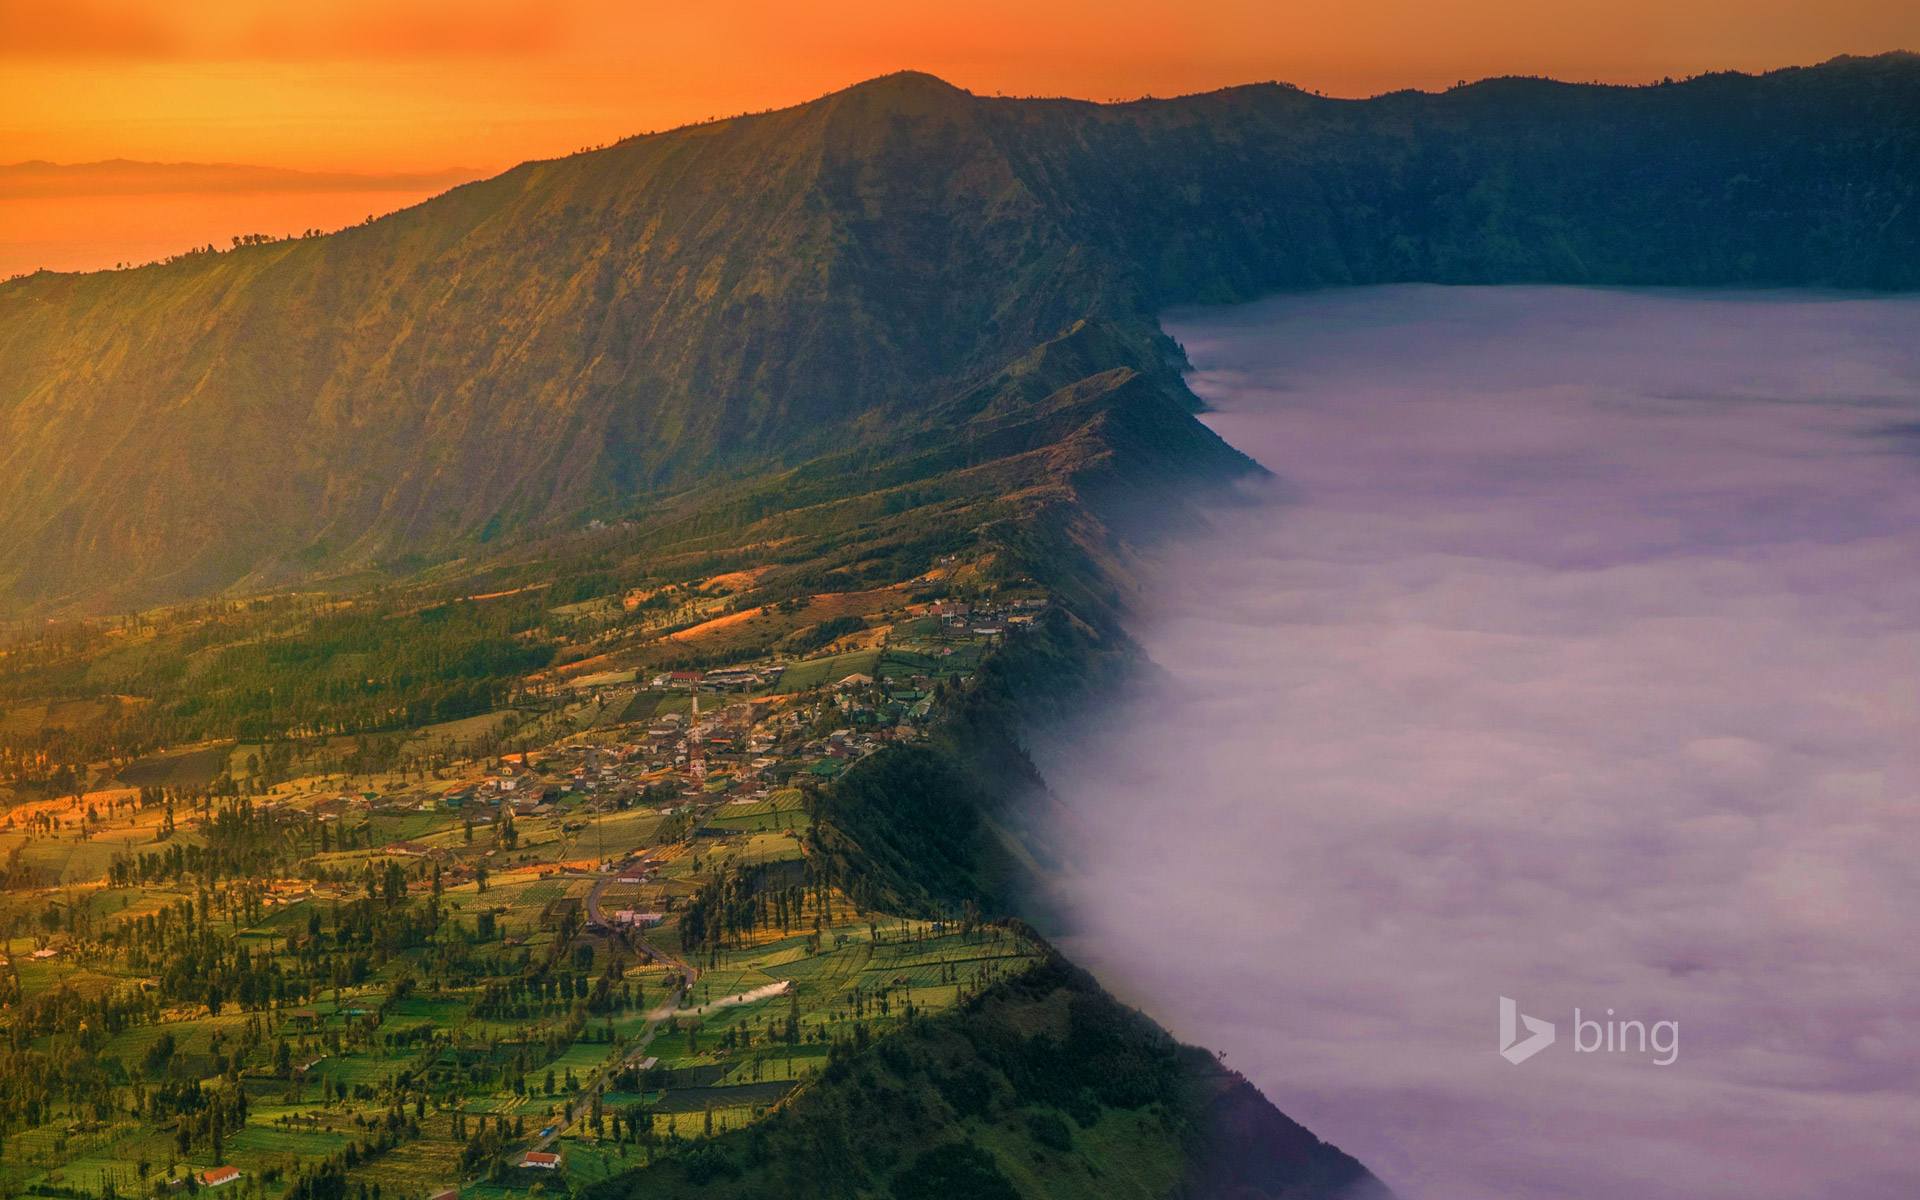 Cemoro Lawang near Mount Bromo, East Java, Indonesia